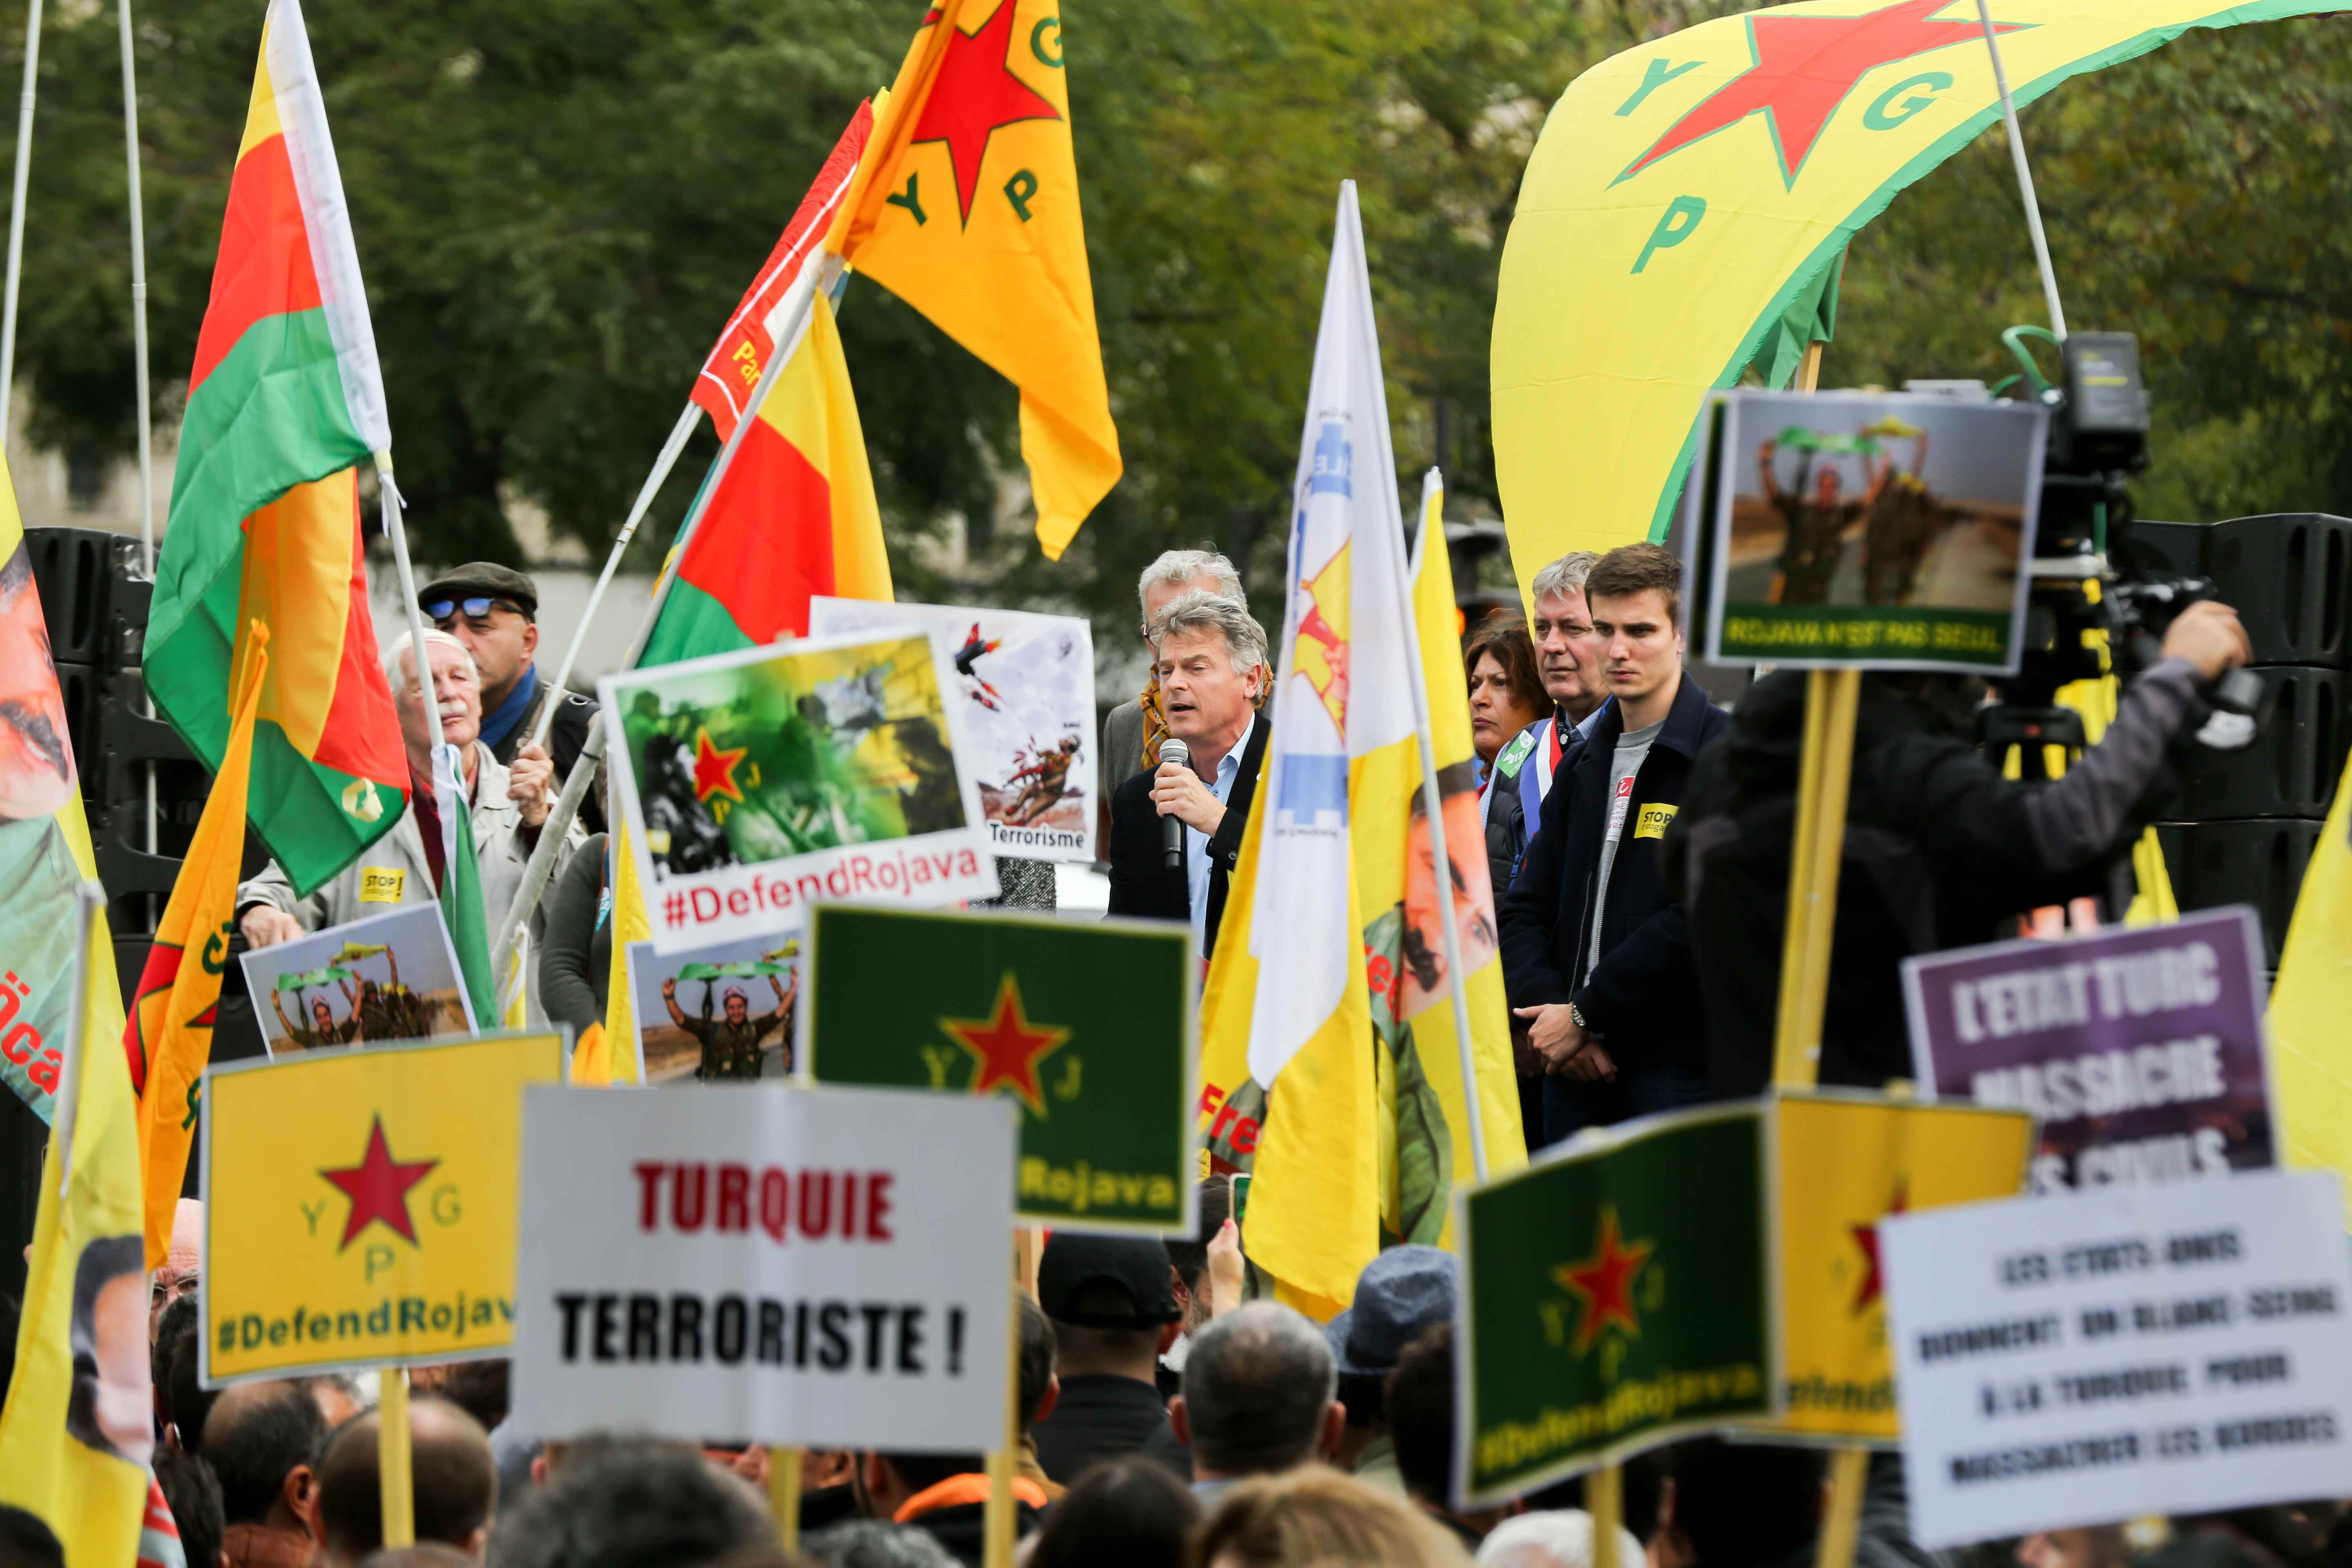 French Communist Party (PCF) national secretary Fabien Roussel (C) adresses people on October 12, 2019 in Paris during a demonstration in support of the Kurds and against the Turkish offensive in Syria. On October 9, 2019, the Turkish military began its as